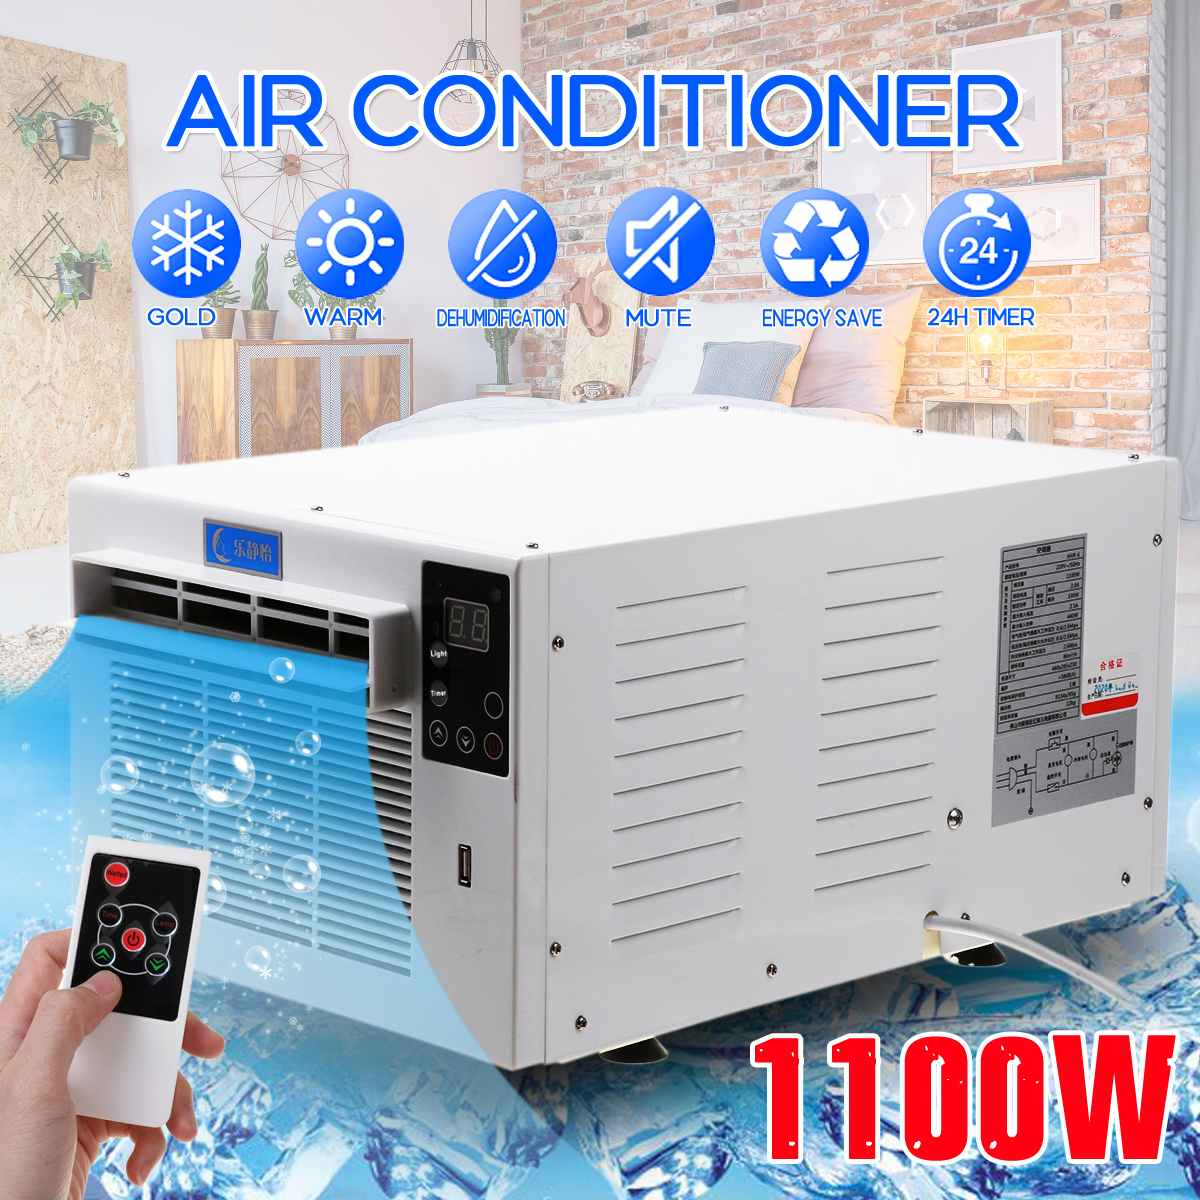 1100W Air Conditioner 220V/110V Portable Cold/Heat dual use 24-hour timer 2 gear lighting LED control panel With remote control